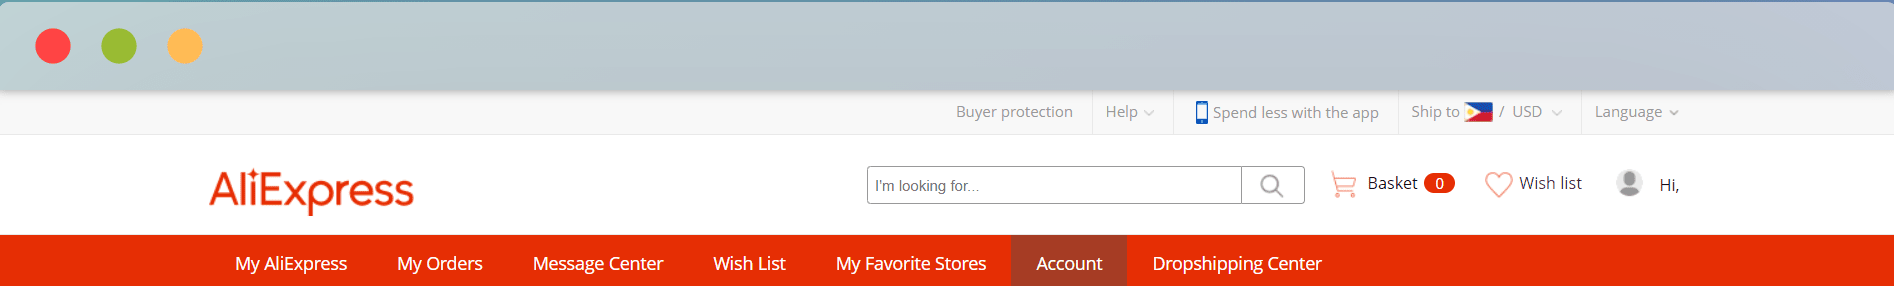 How to Find the Dropshipping Center on Your Account